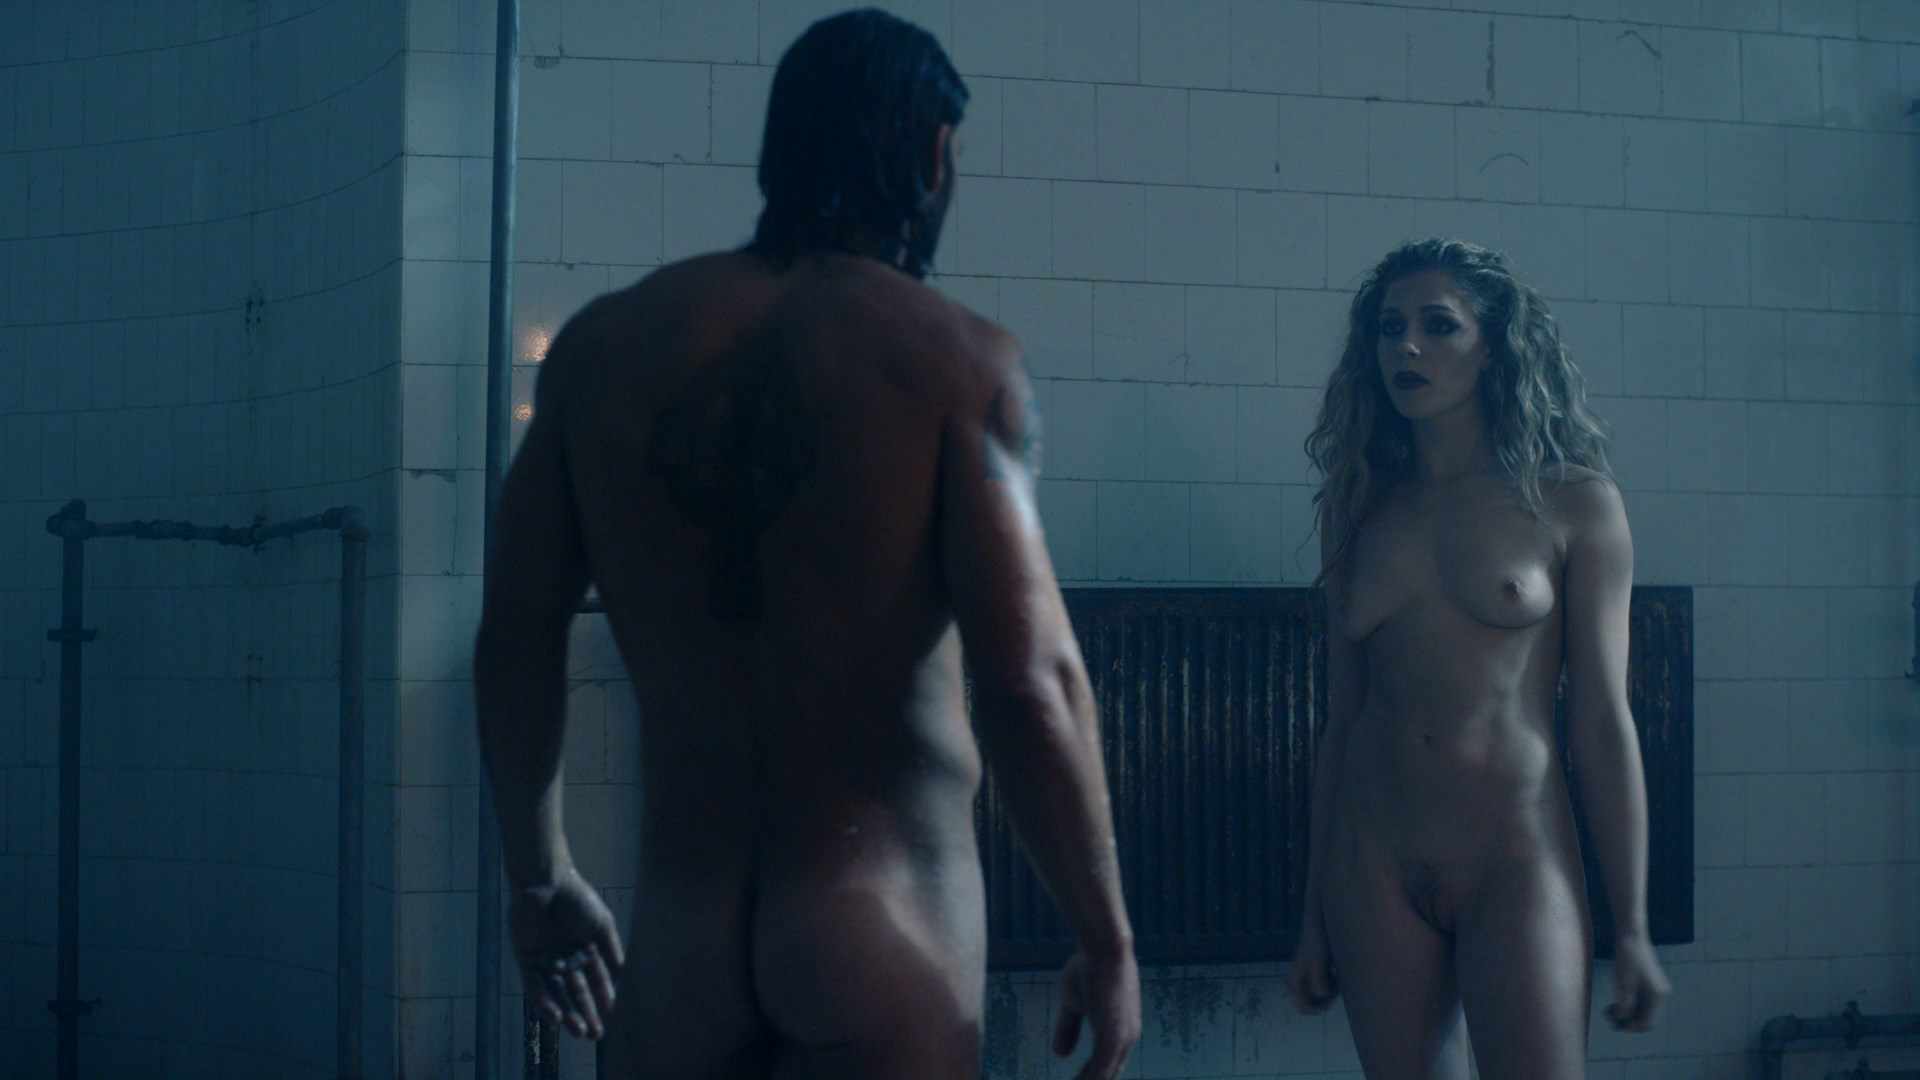 Naked in race to the scene